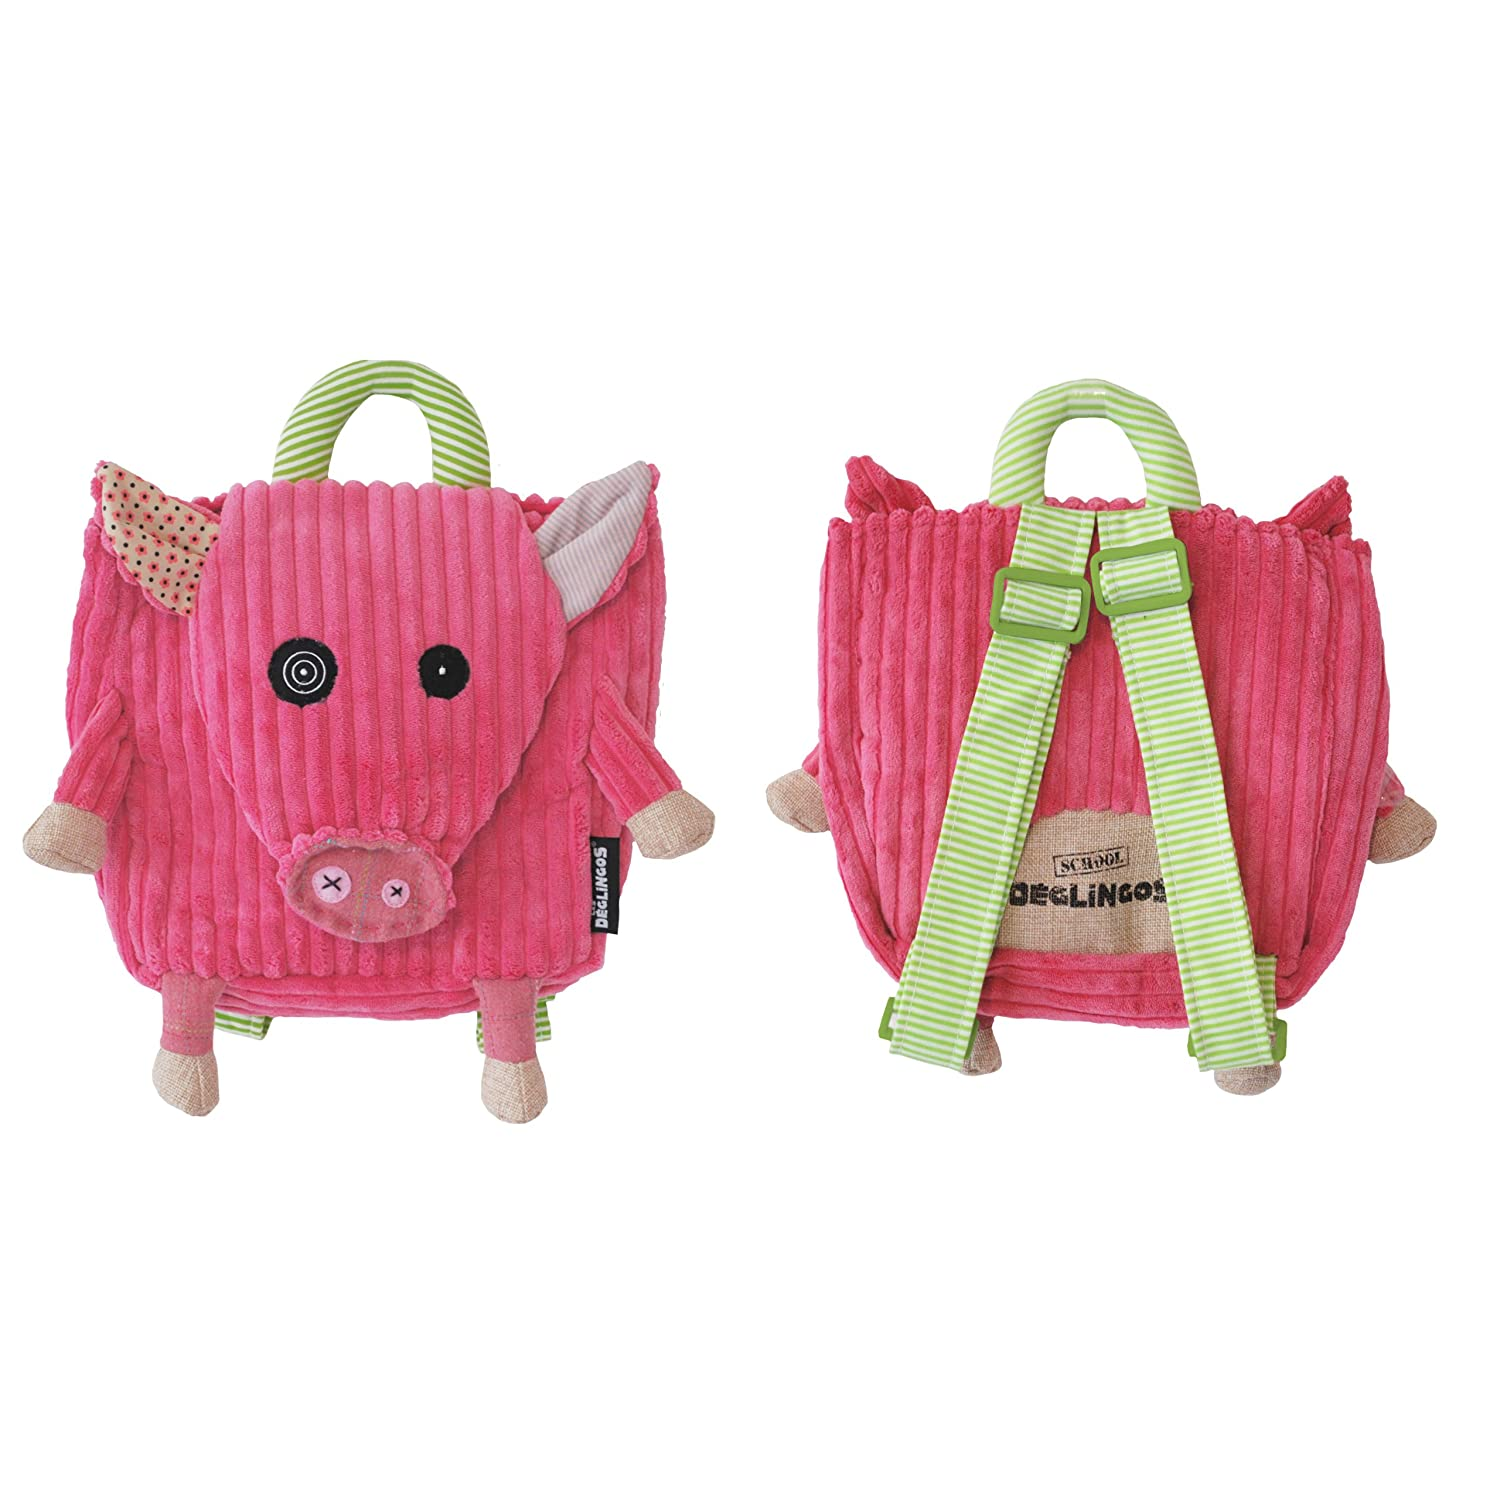 The Deglingos Jambonos the Pig Backpack